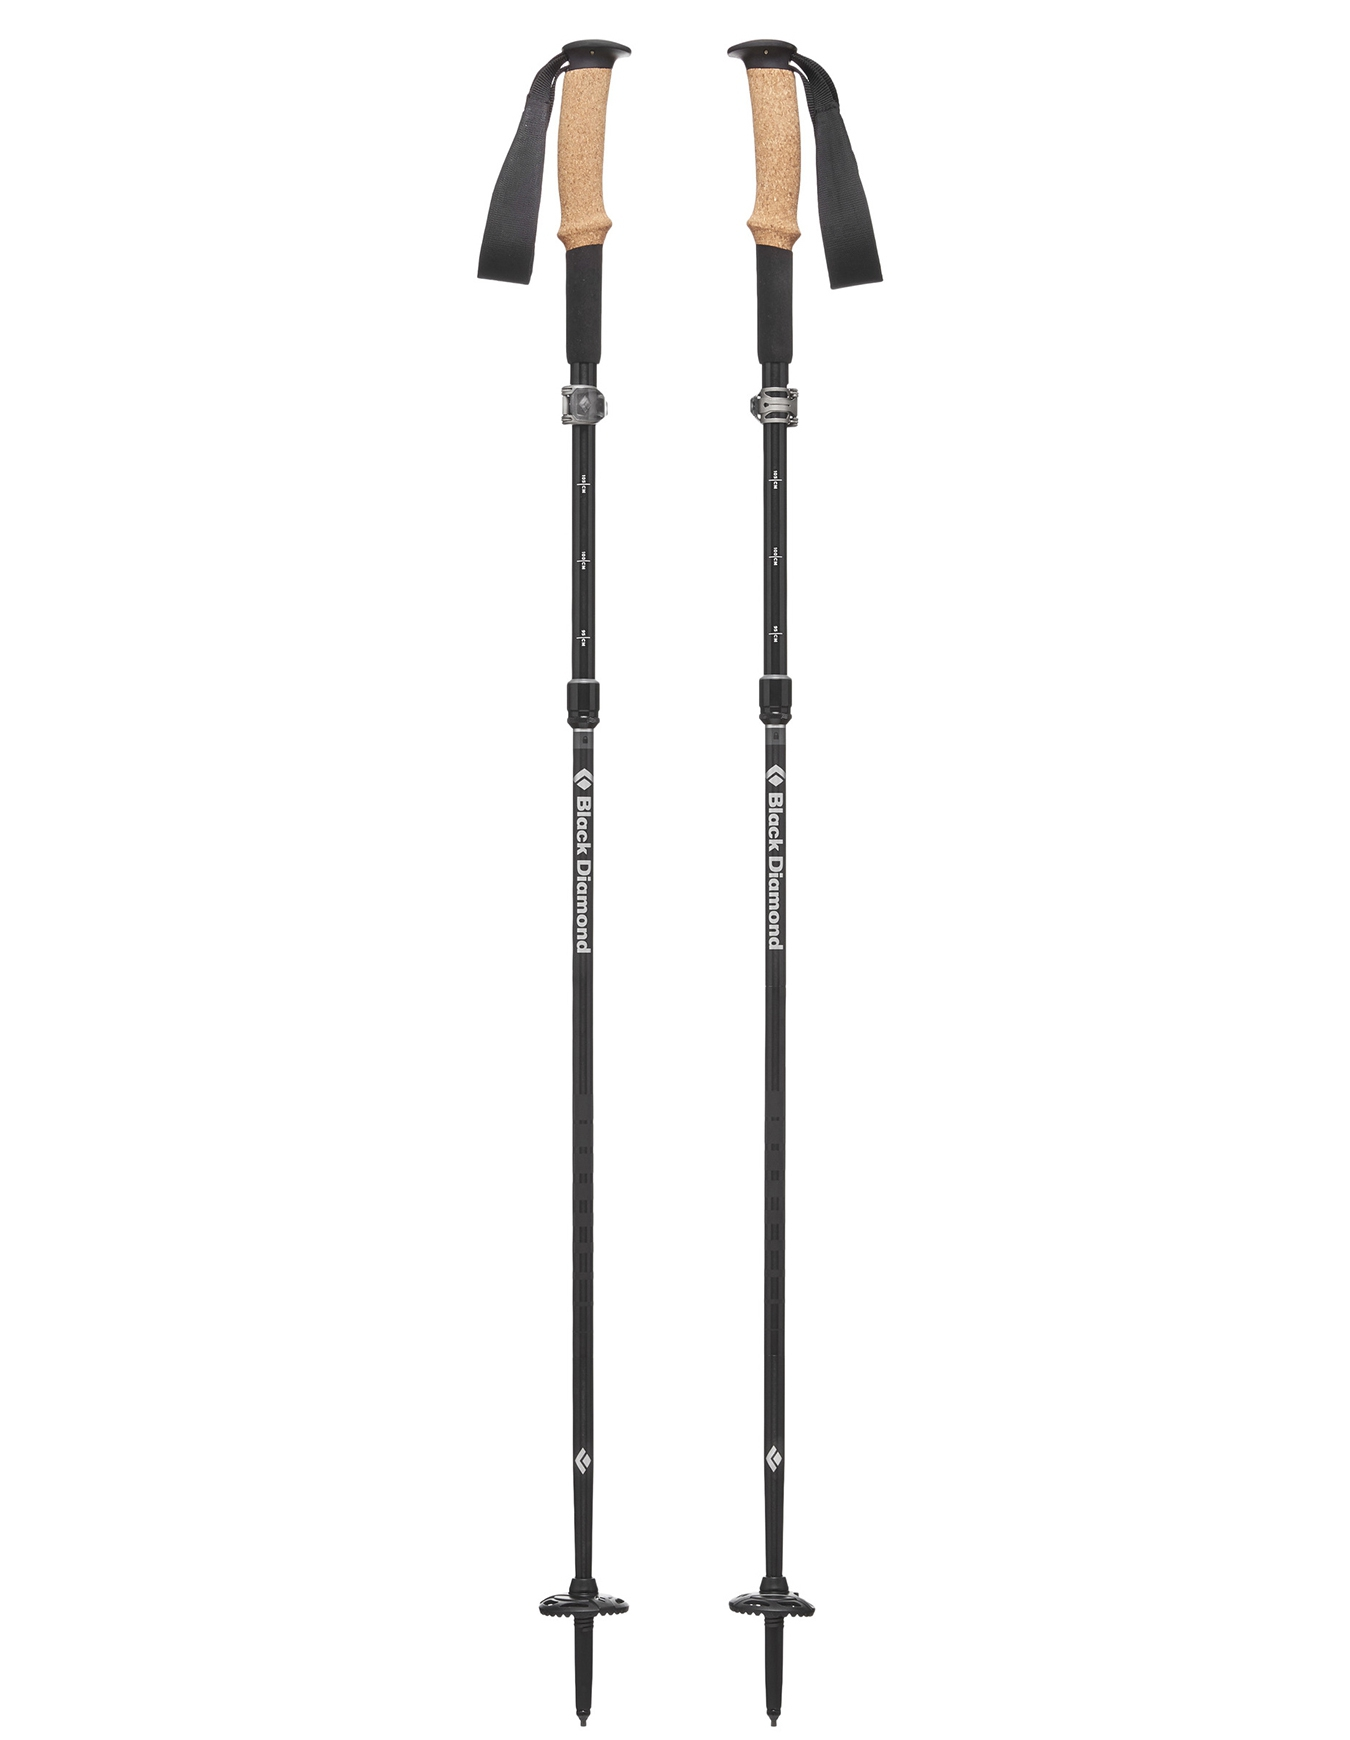 120 cm Black Diamond Alpine Carbon Z Bâtons De Trekking Carbone